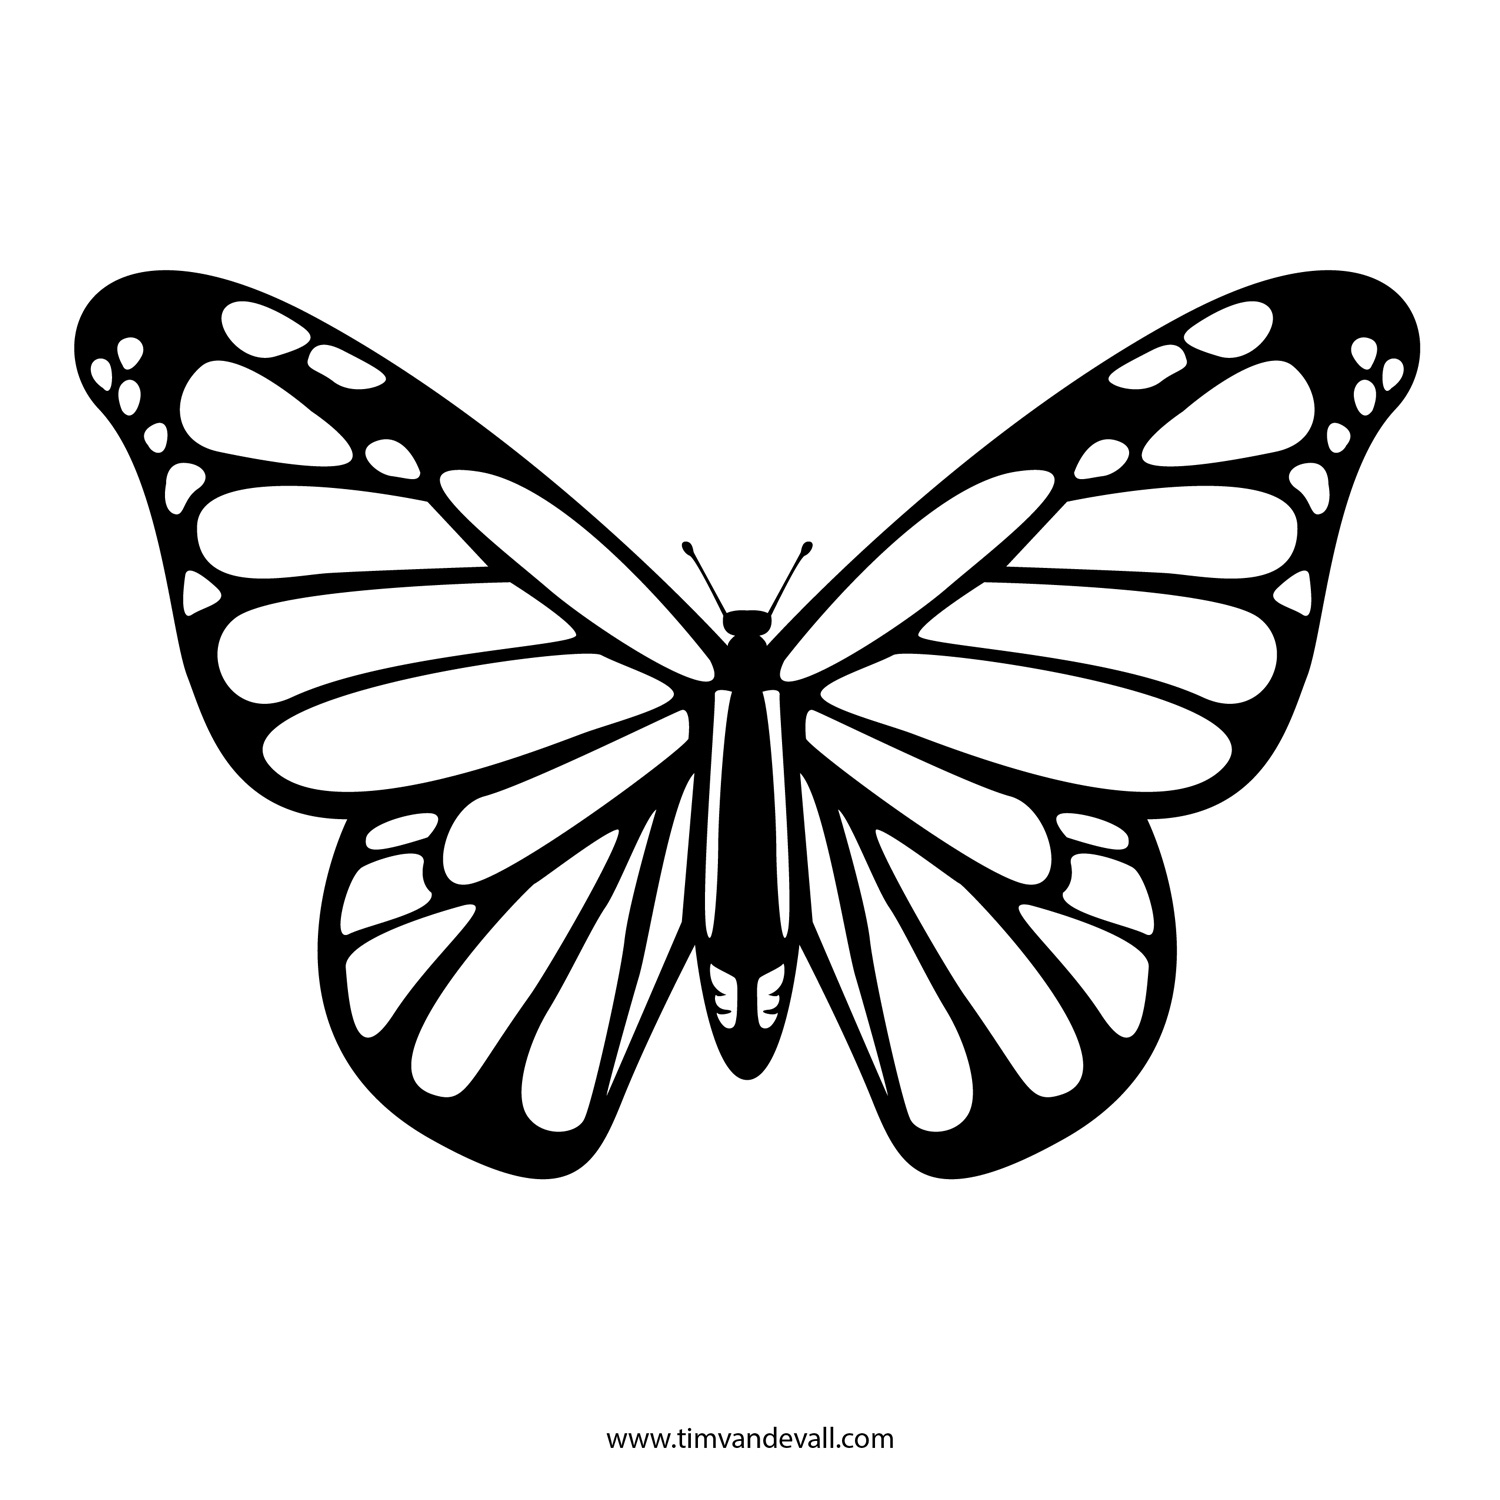 hight resolution of butterfly black and white monarch butterfly clipart black and white 3